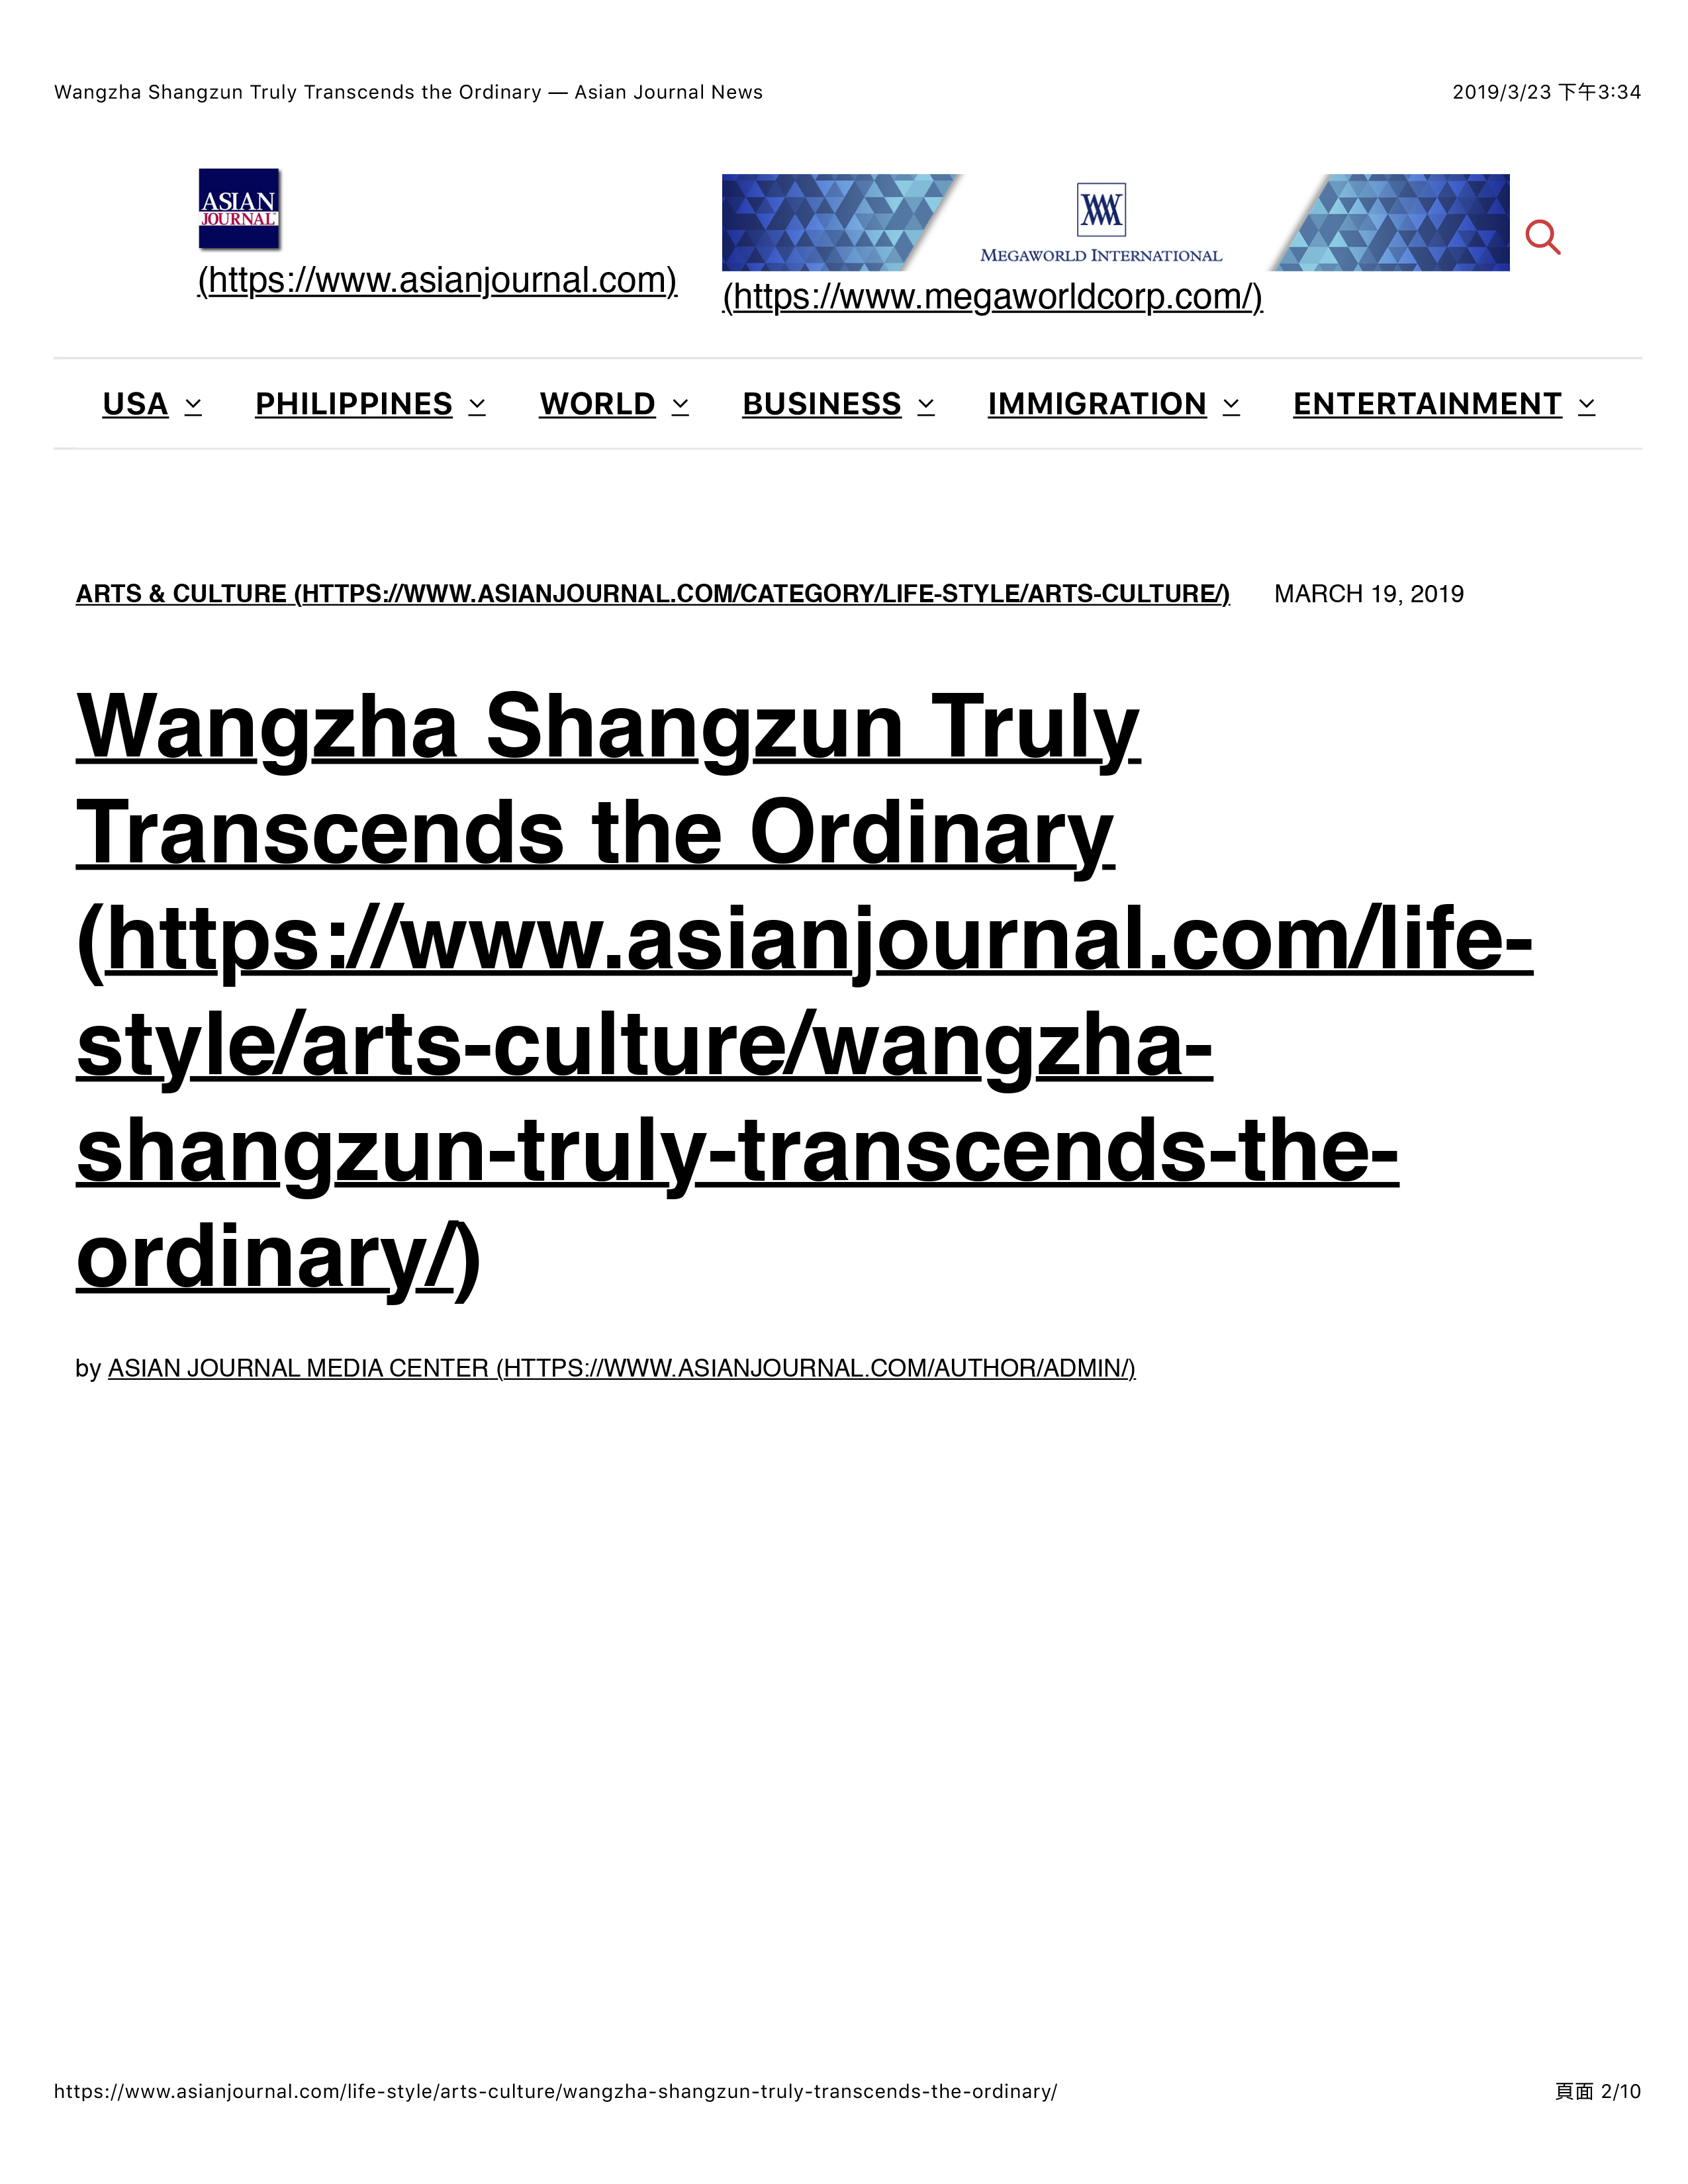 Asian Journal Wangzha Shangzun Truly Transcends the Ordinary-1